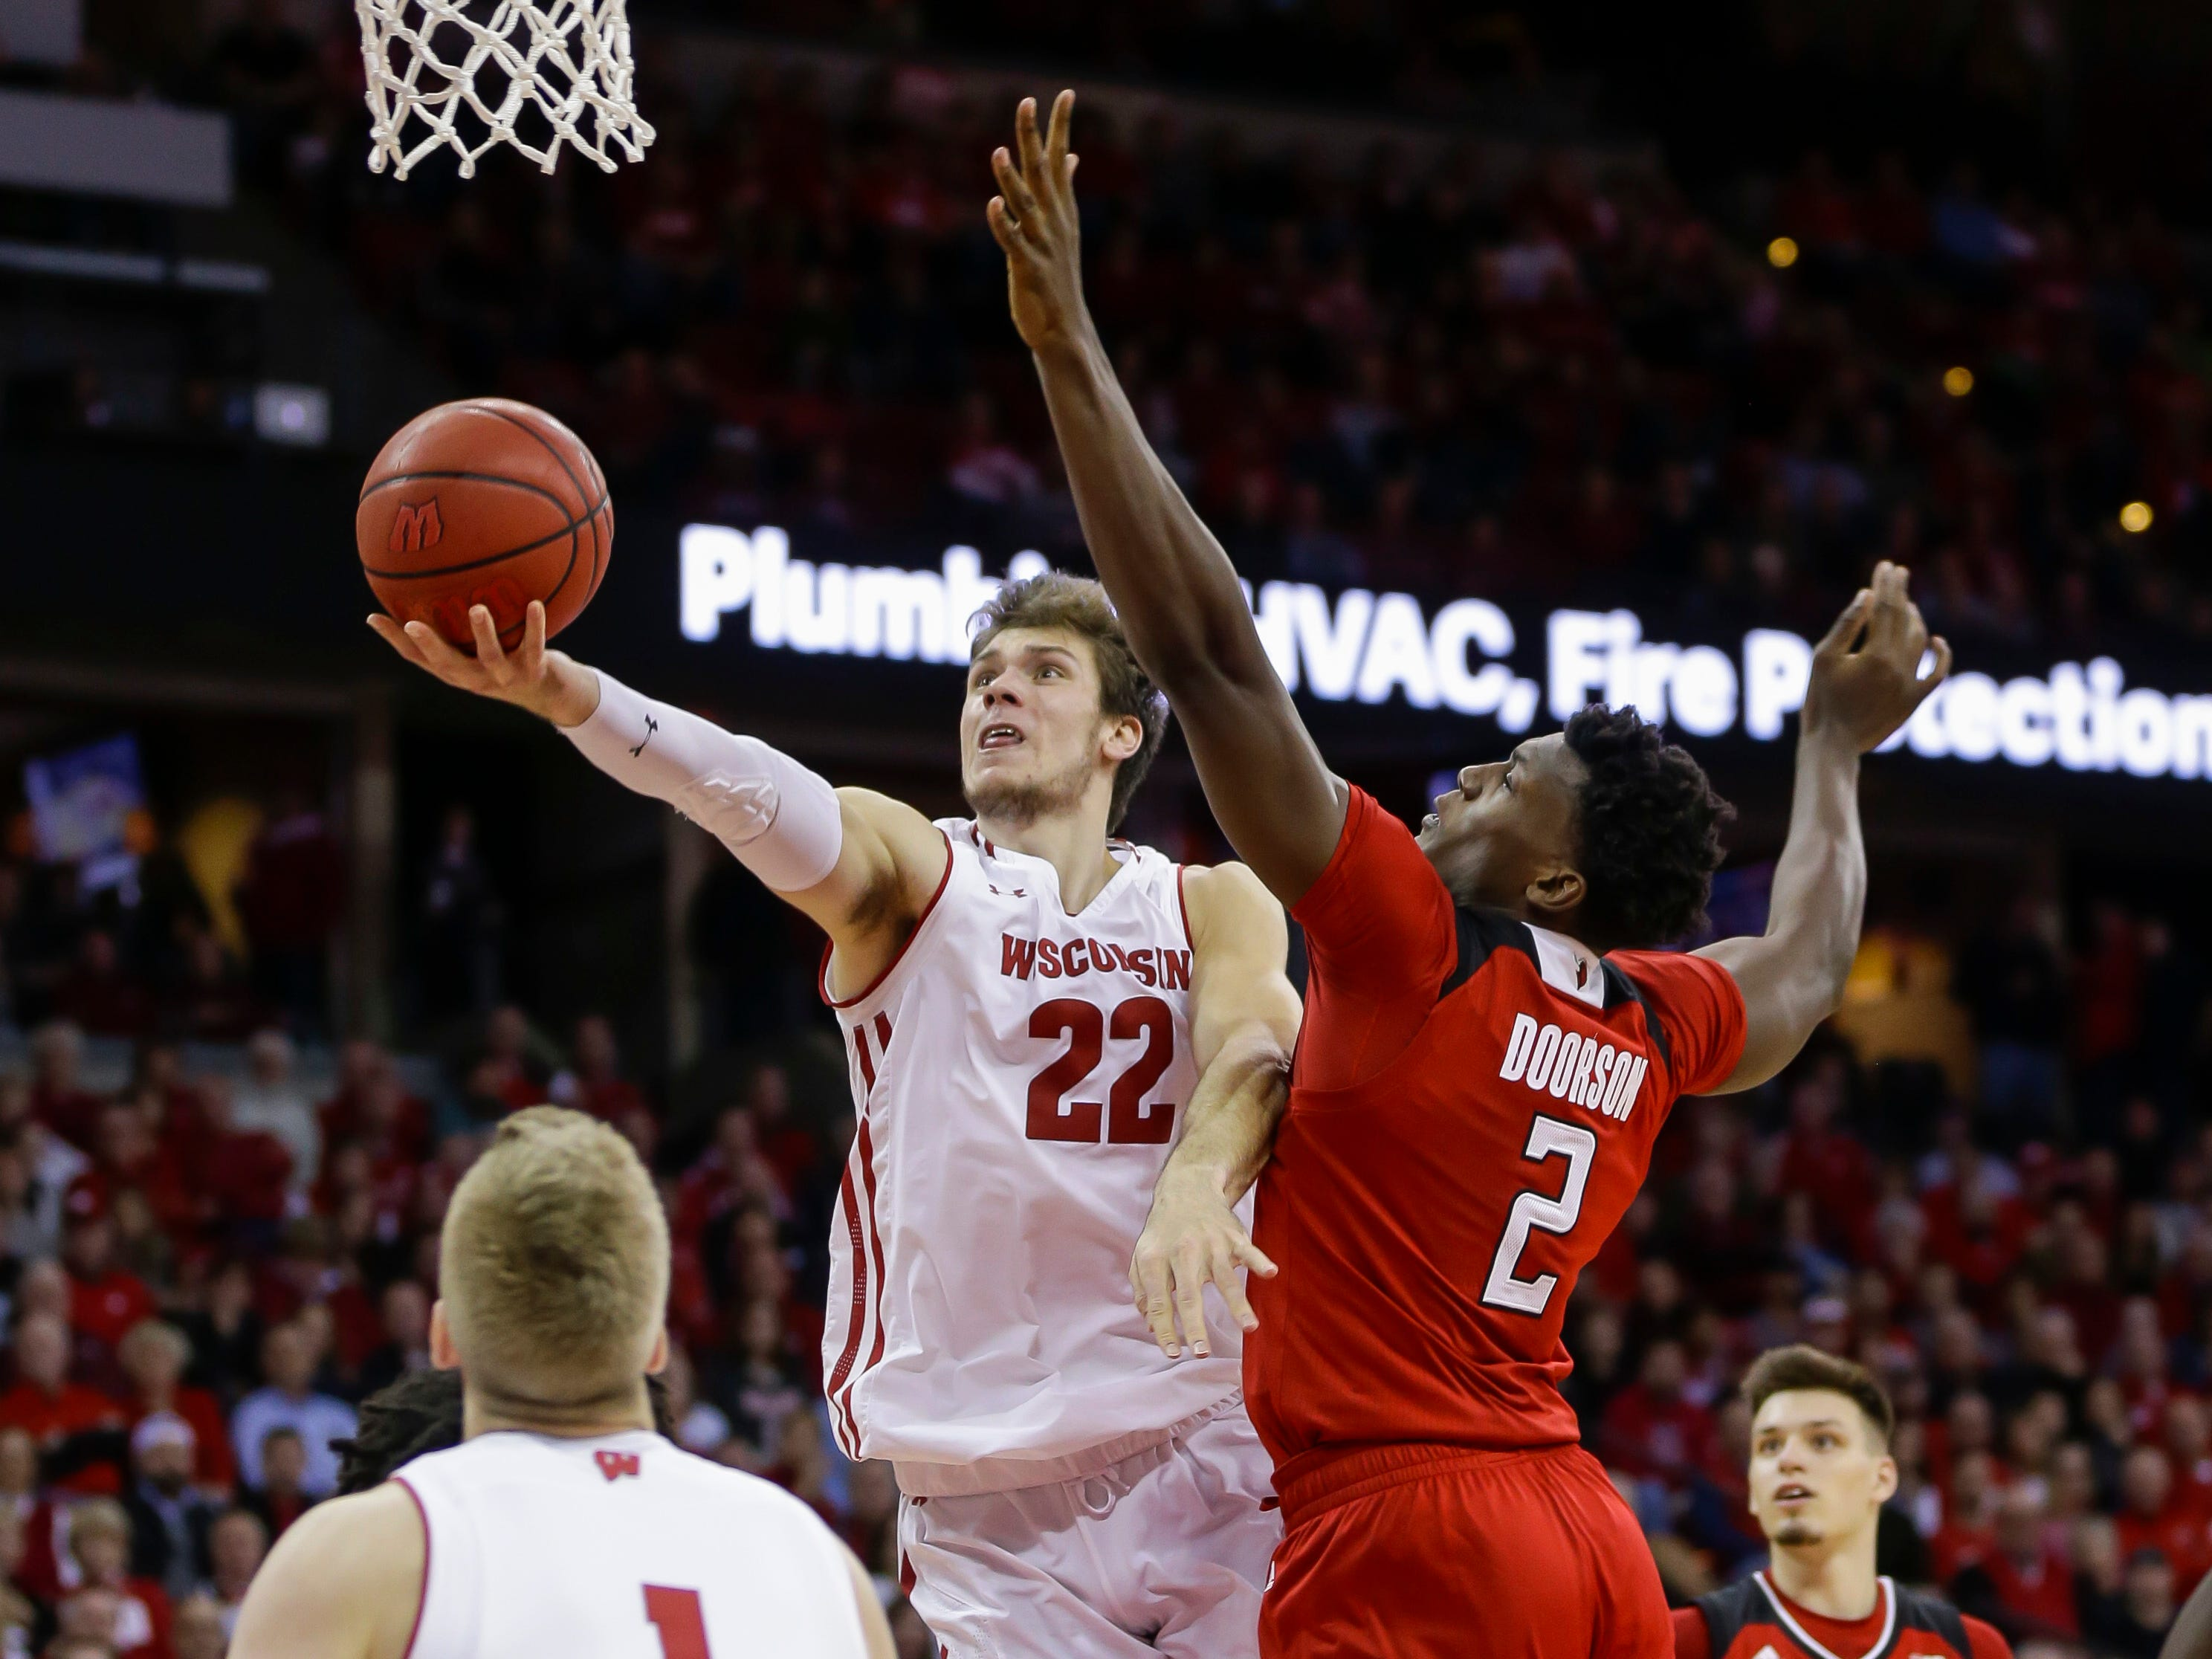 Wisconsin's Ethan Happ puts up a underhanded shot near the hoop against Rutgers' Shaquille Doorson  during the second half on Monday night at the Kohl Center.